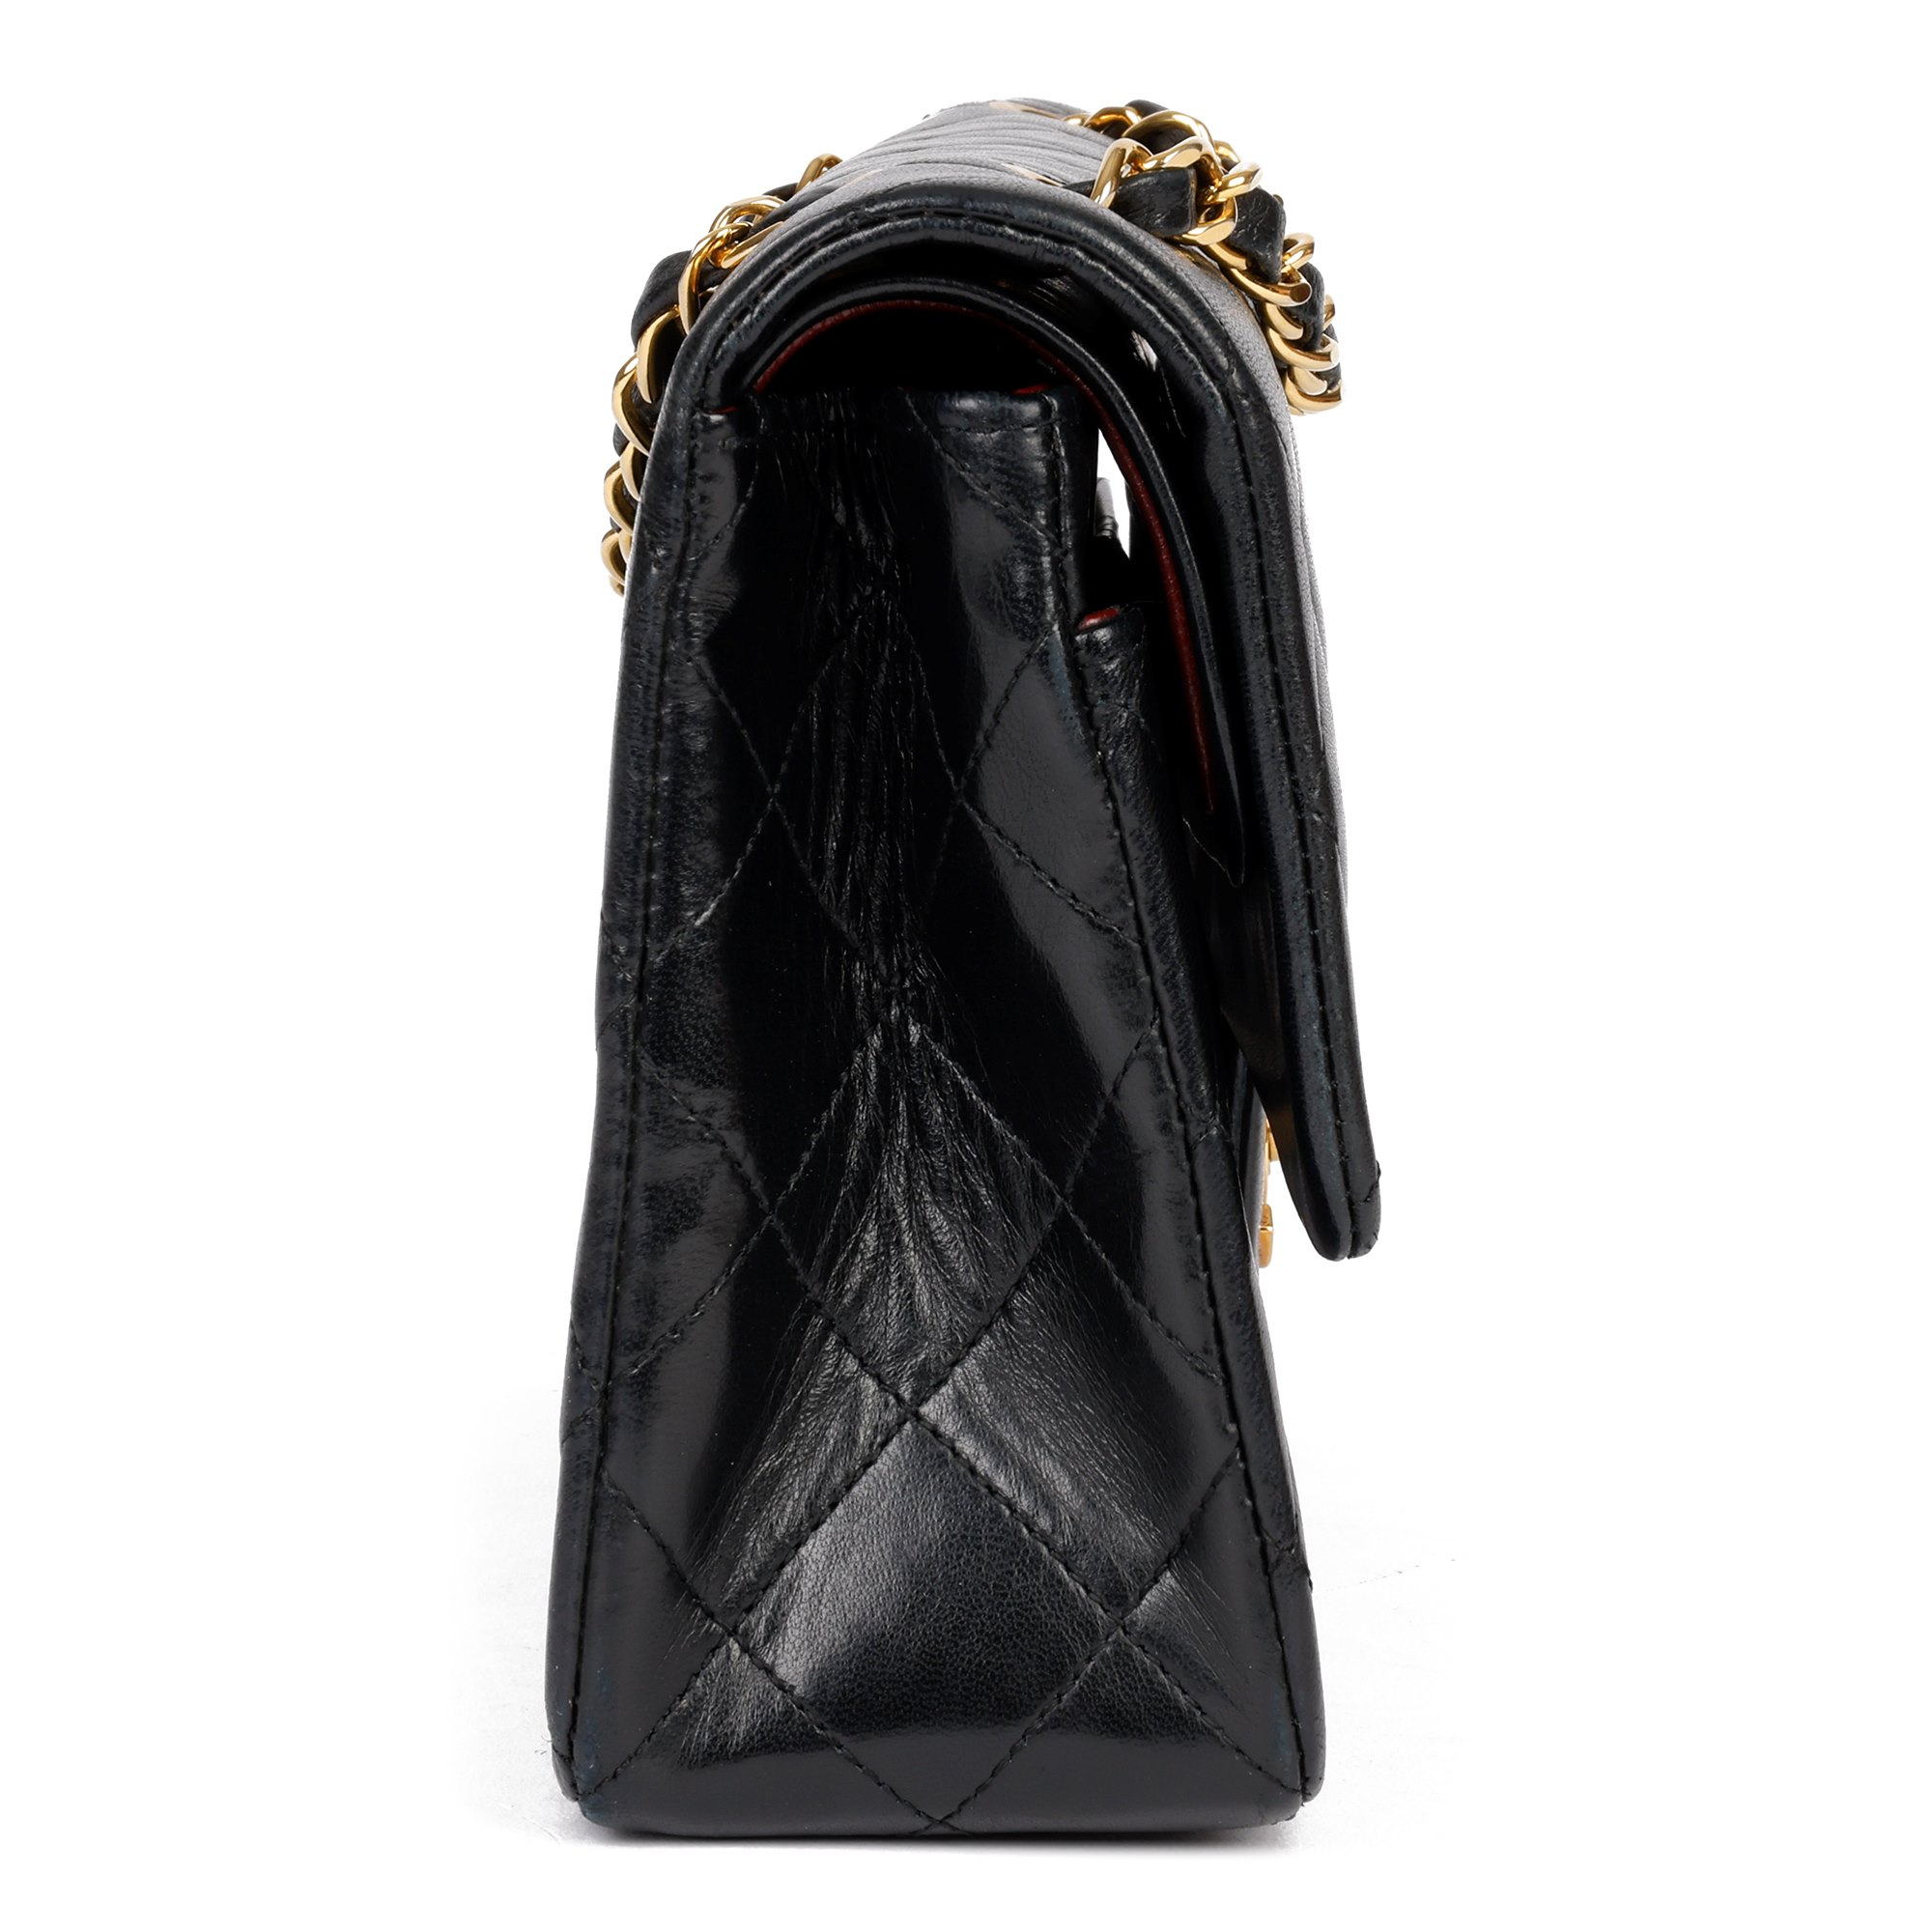 Chanel Black Quilted Lambskin Leather Vintage Small Classic Double Flap Bag